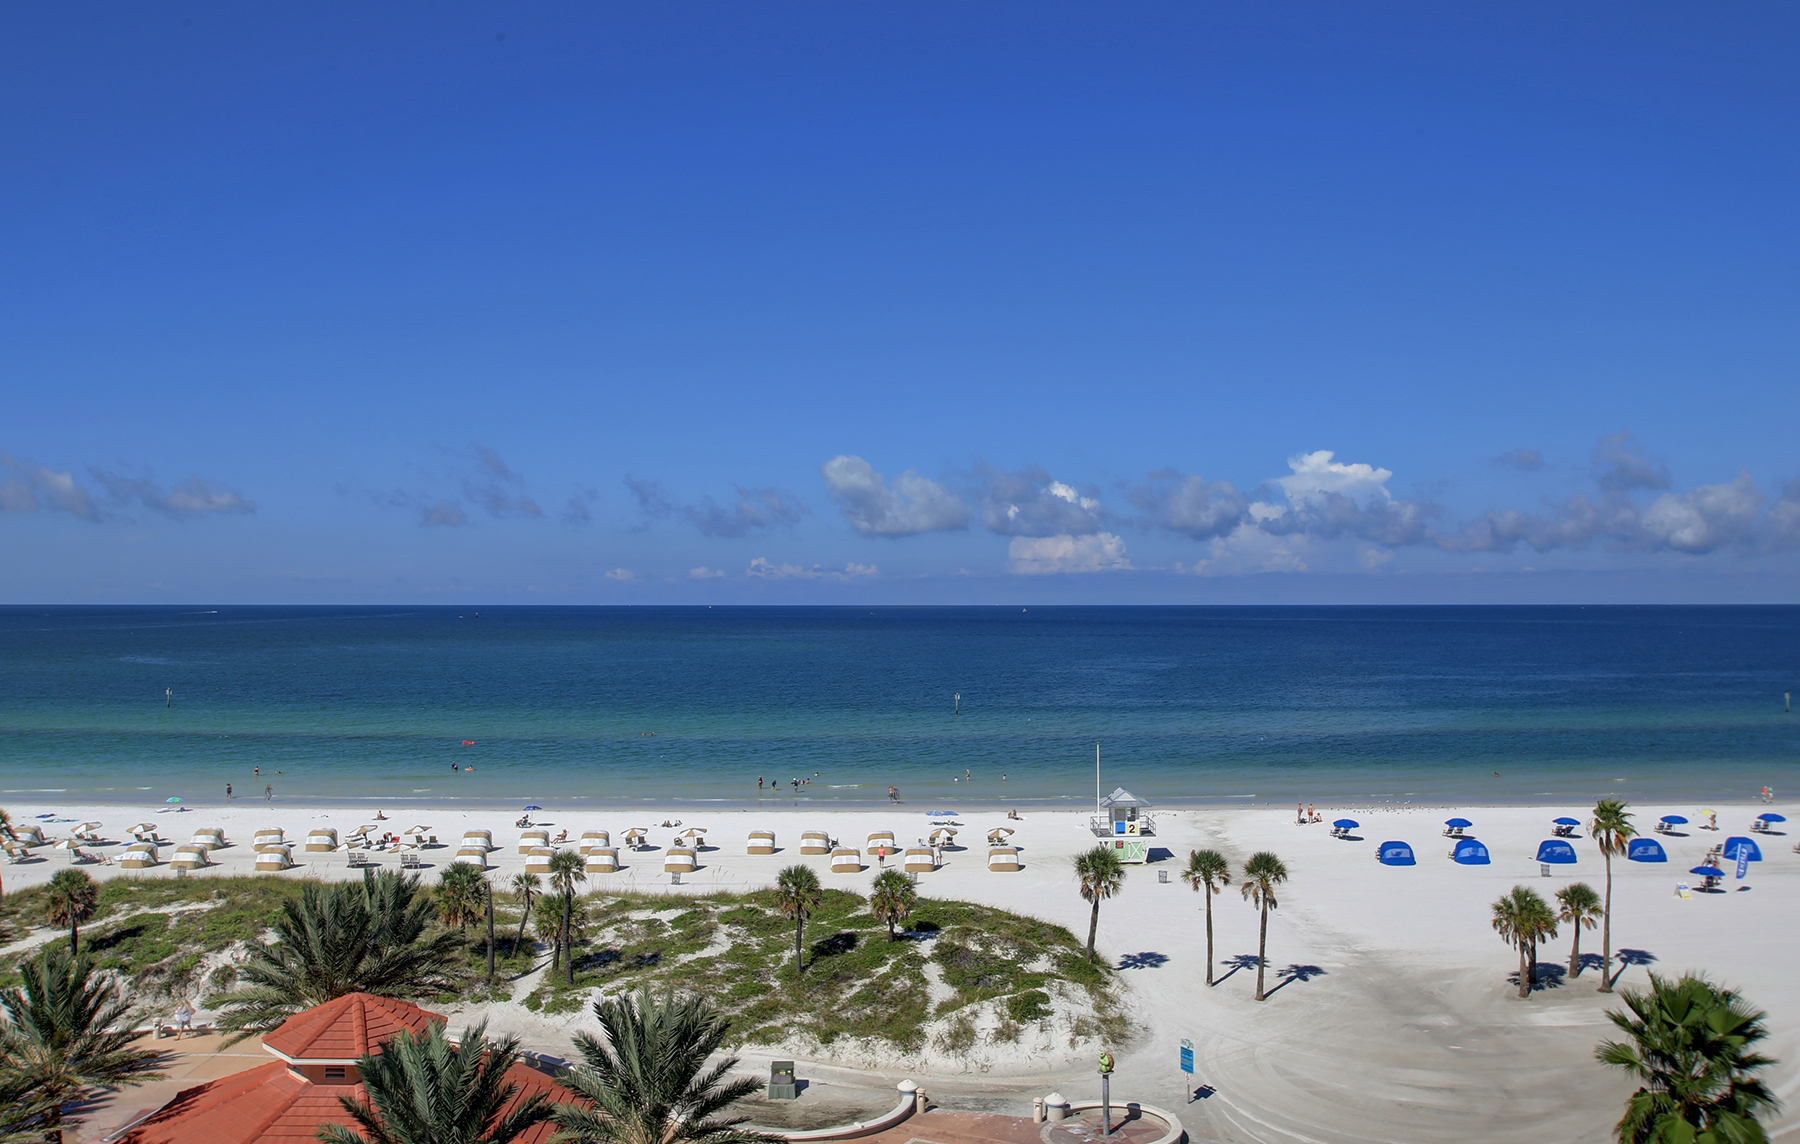 Condominium for Sale at CLEARWATER BEACH 301 S Gulfview Blvd 702 Clearwater Beach, Florida, 33767 United States